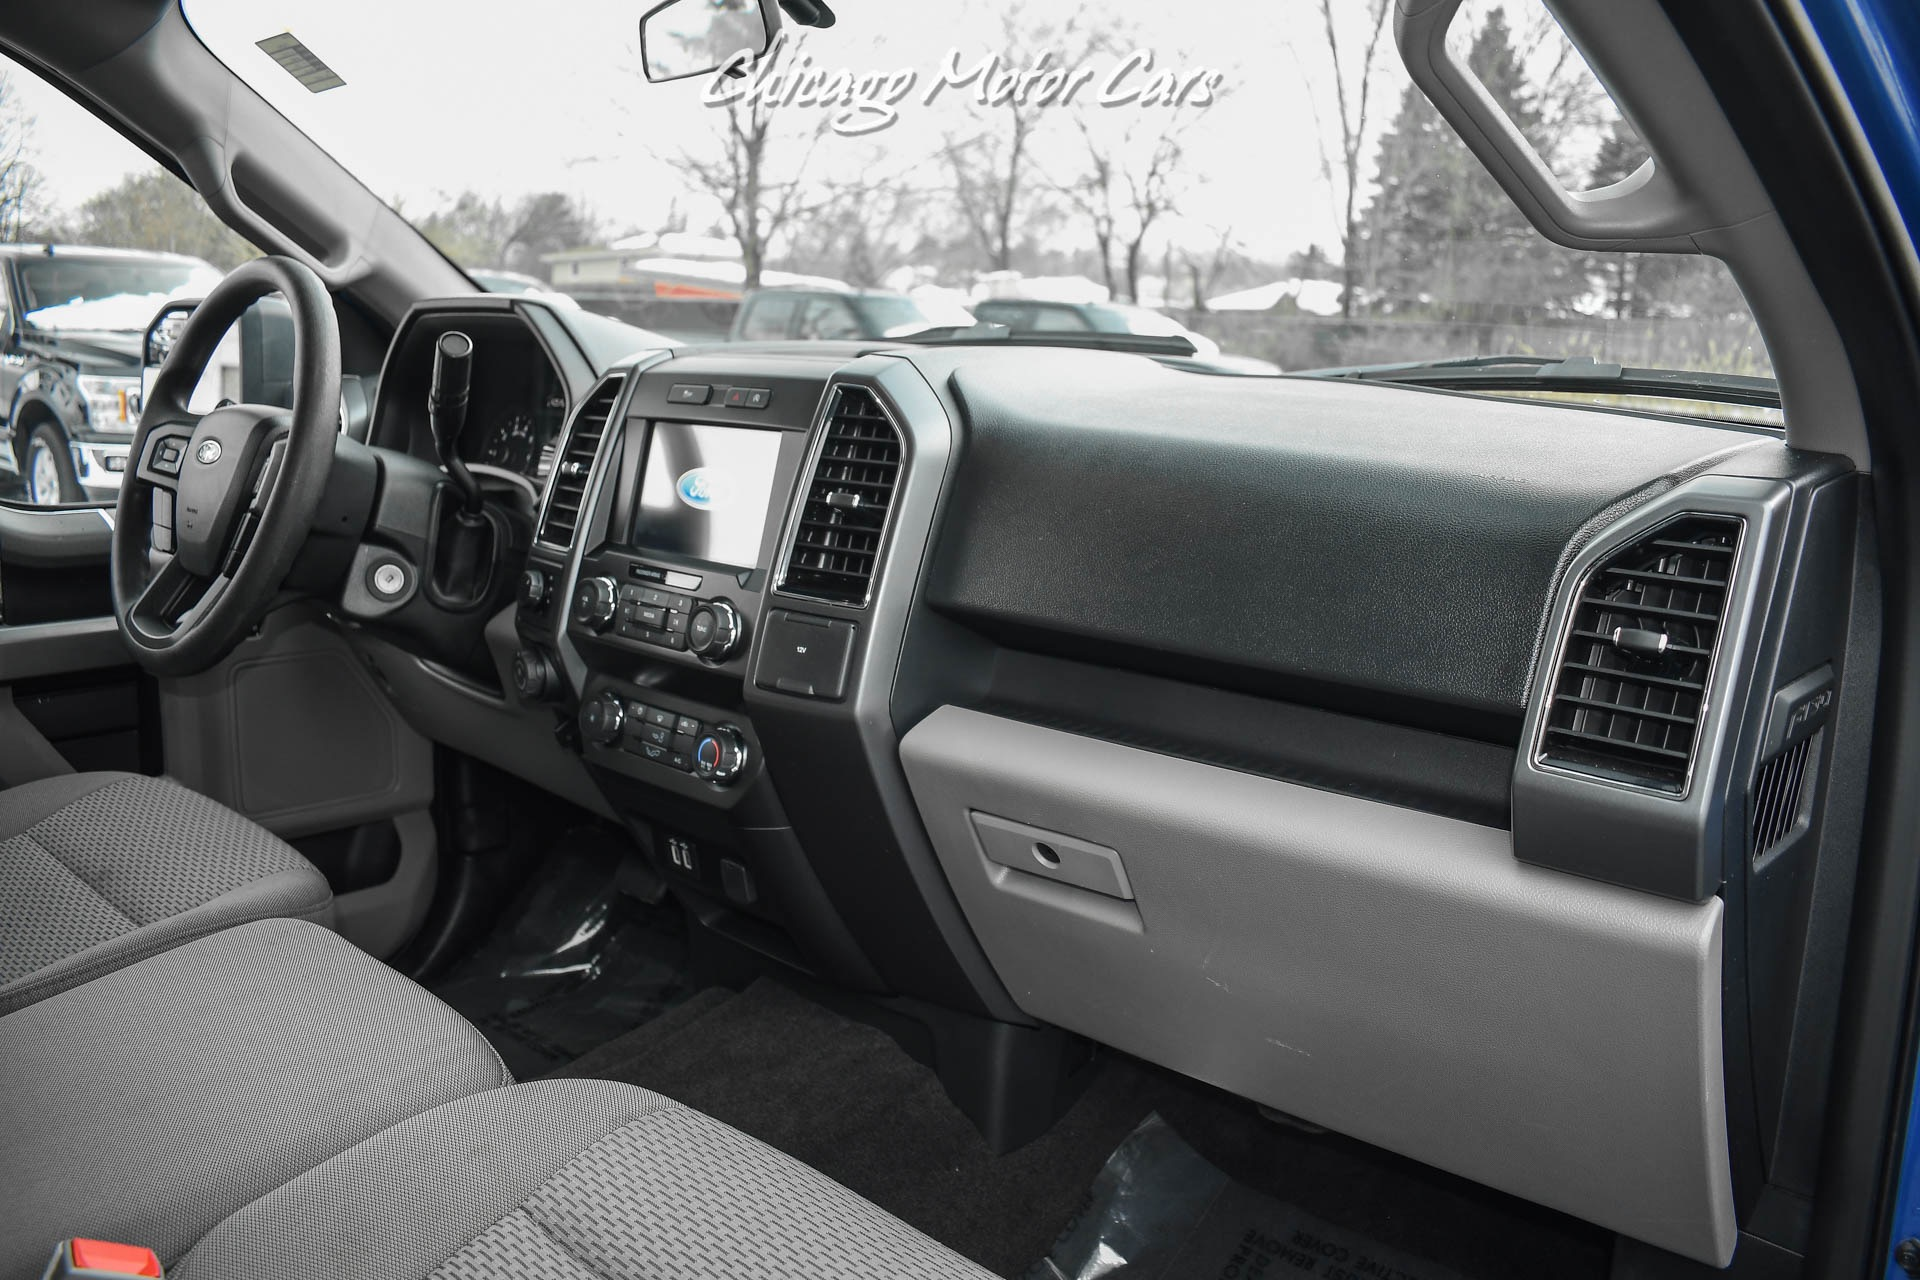 Used-2020-Ford-F150-XLT-Crew-Cab-Pickup-35L-Twin-Turbo-V6-EcoBoost-Backup-Camera-Only-16k-Mil